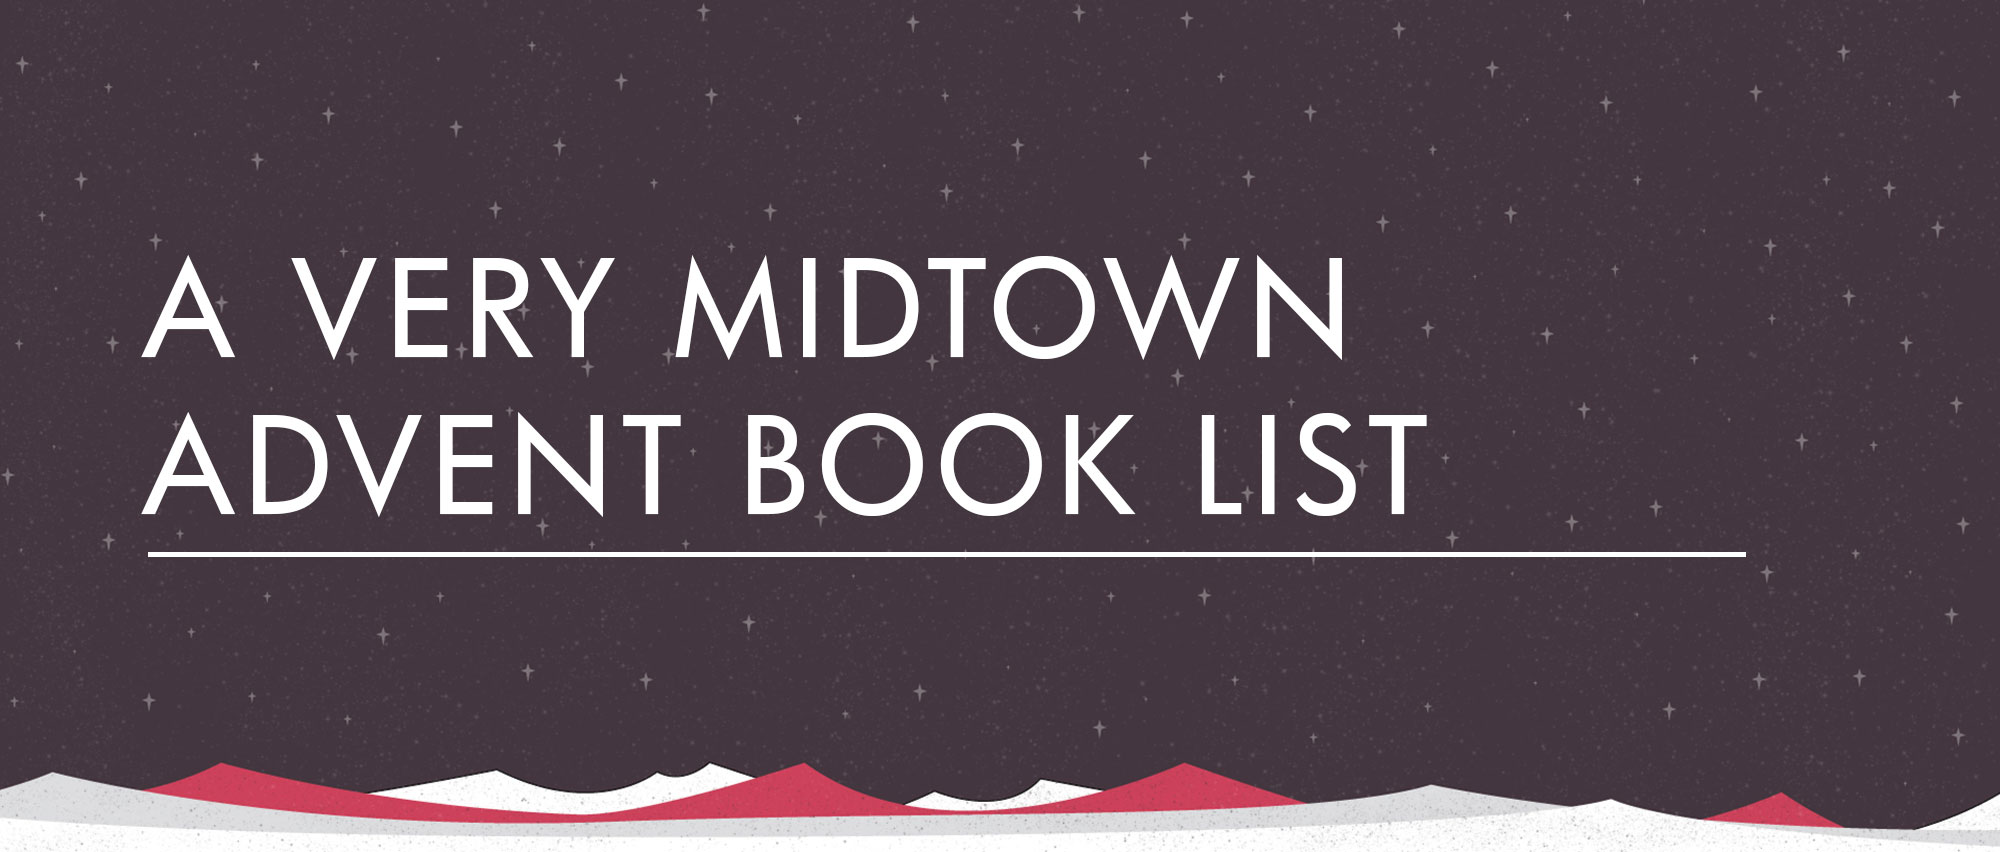 Giv_BlogHeader_A-Very-Midtown-Advent-Book-List.jpg